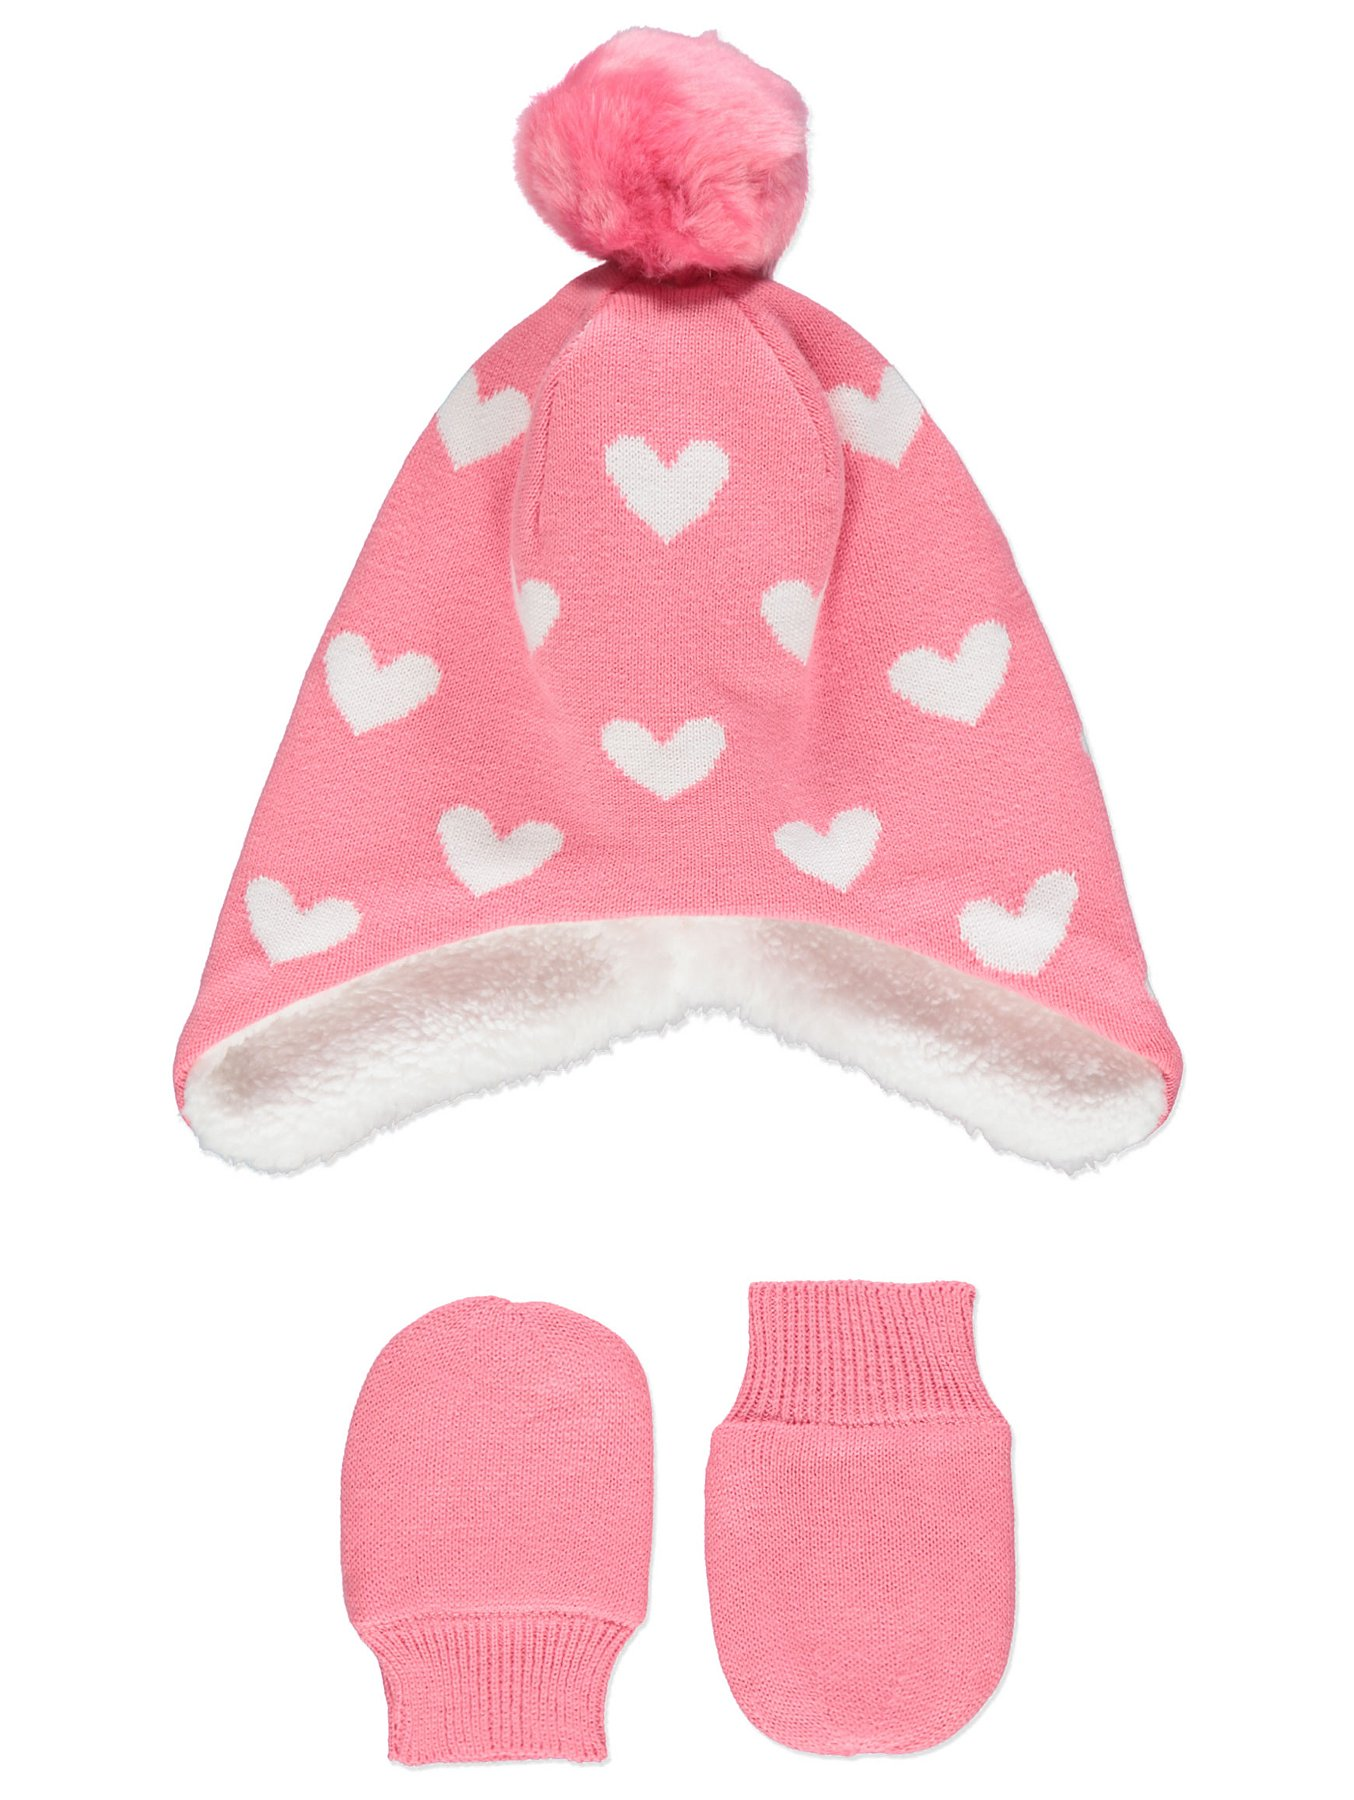 0ce36651c66 Pink Heart Print Trapper Hat and Mittens Set. Reset